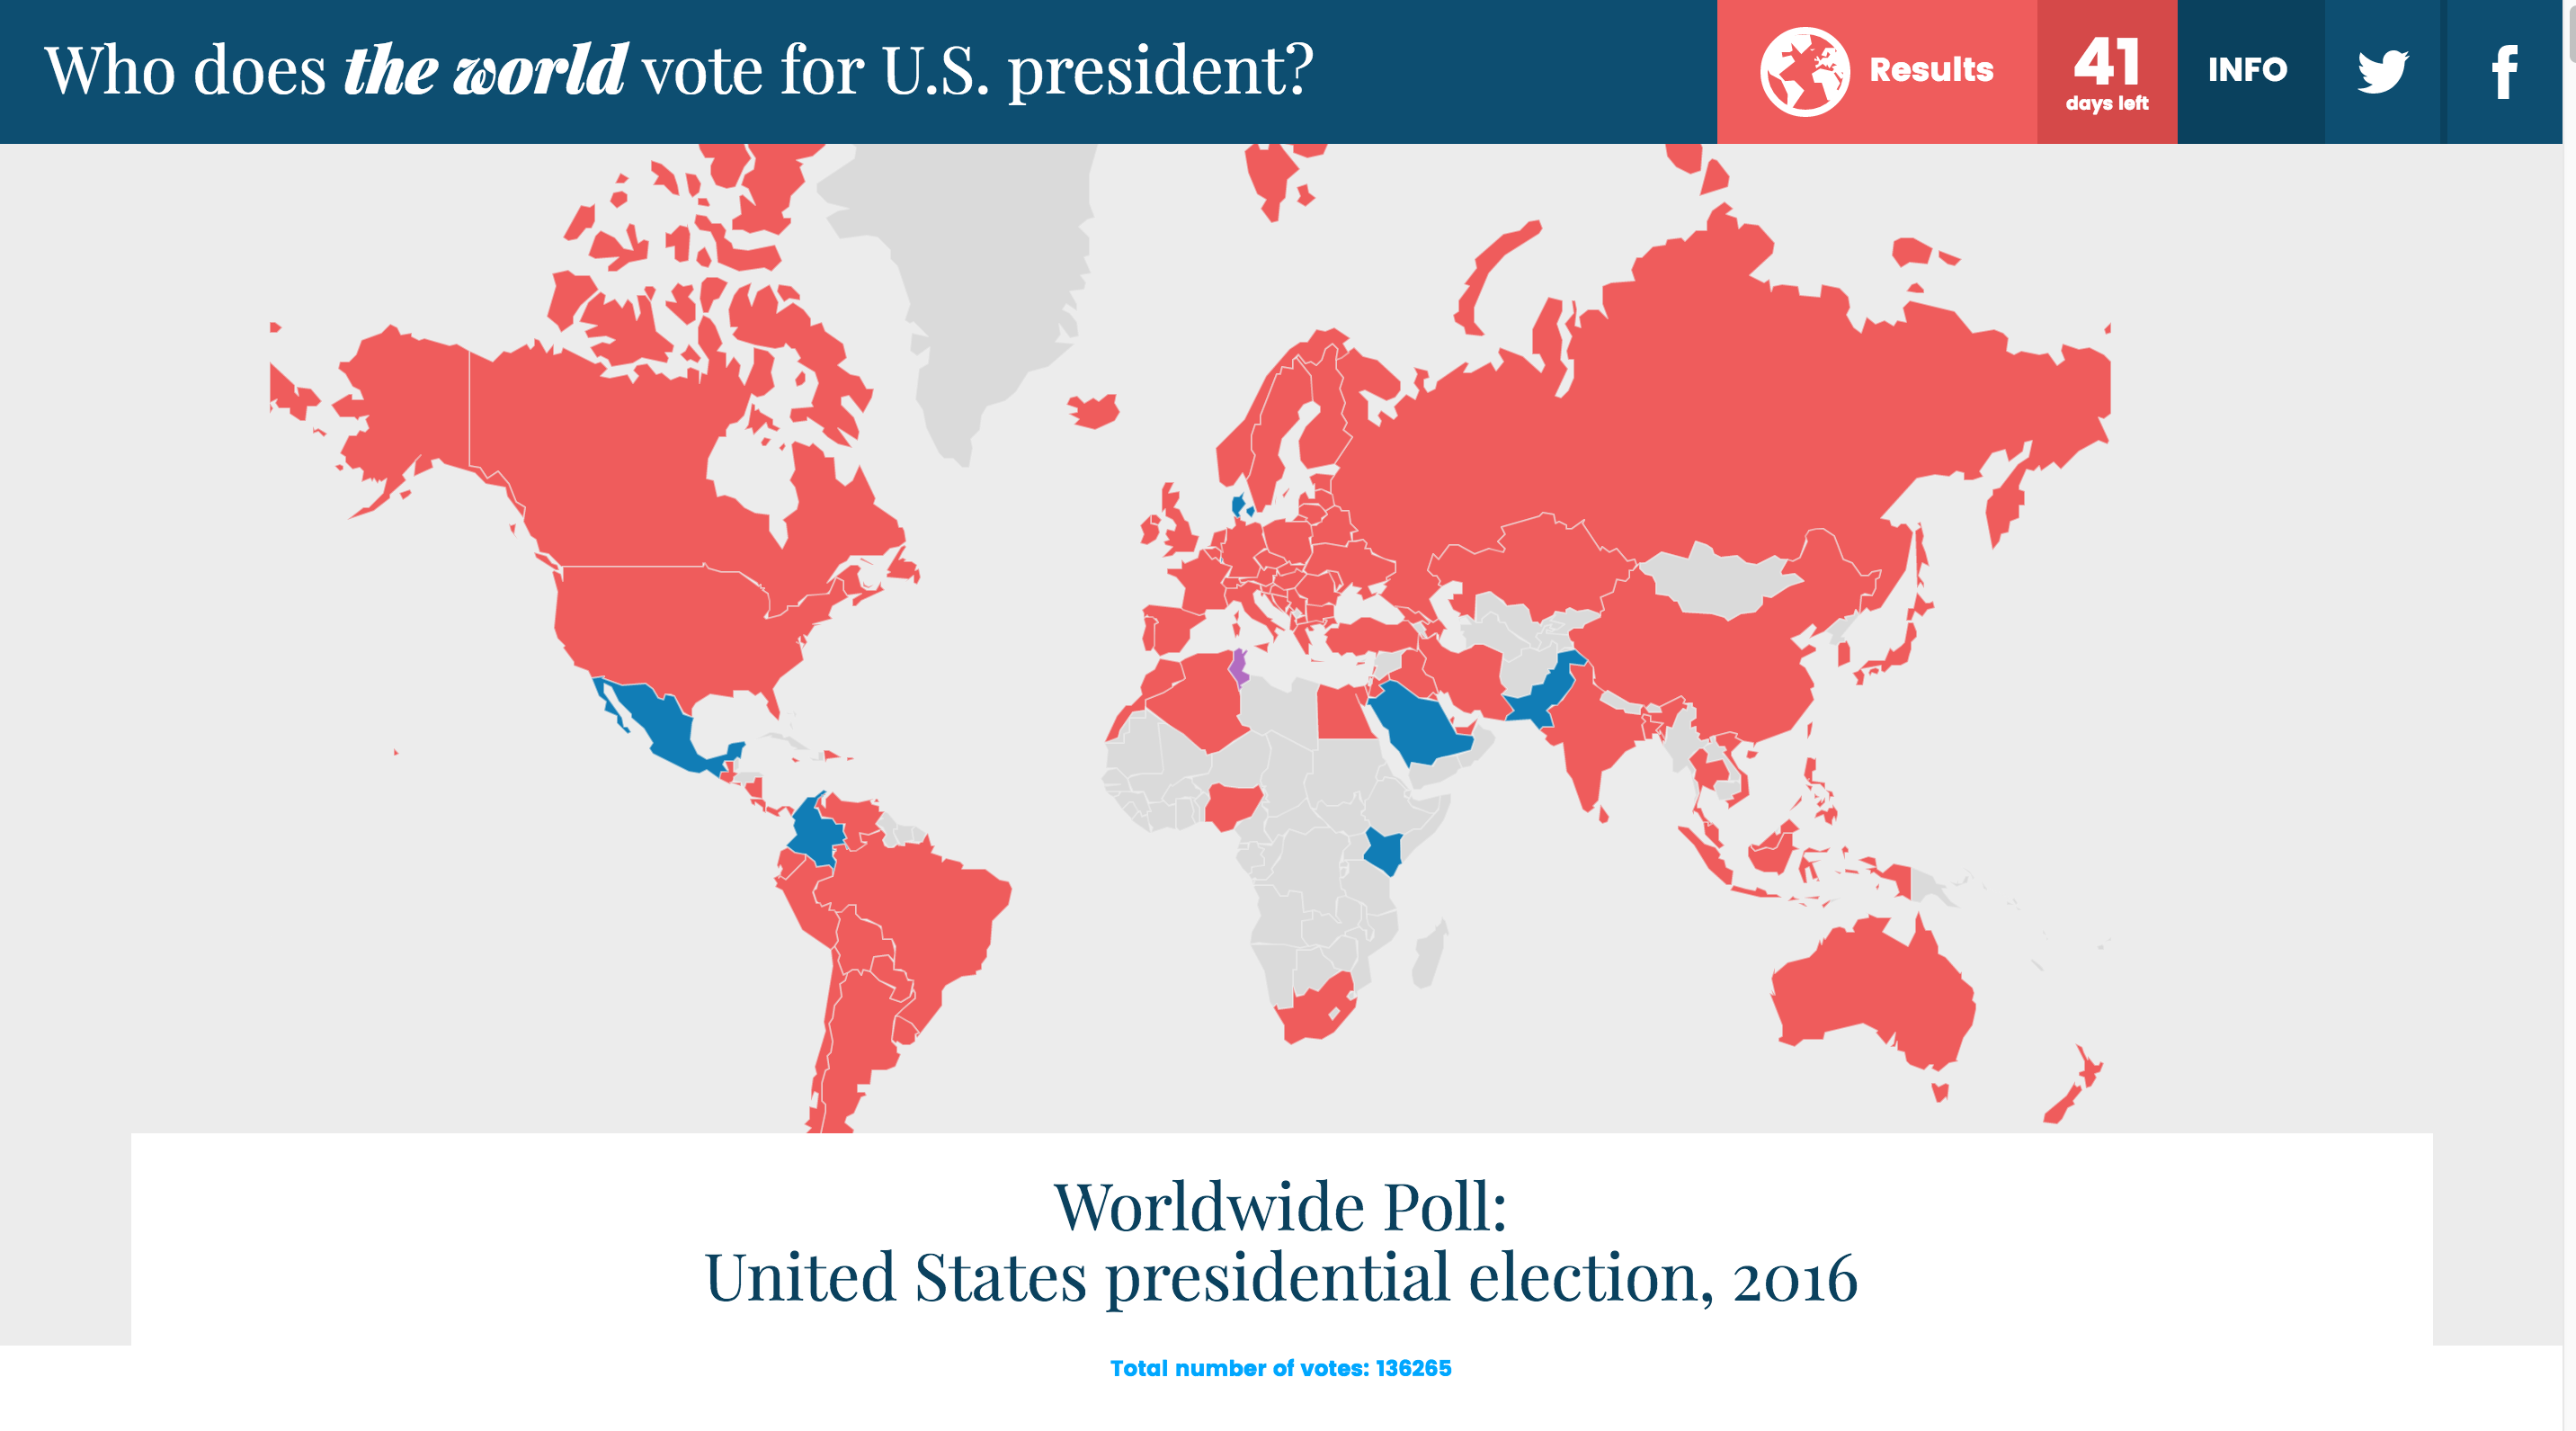 worldwide-vote-hillary-vs-trump-presidential-election-2016